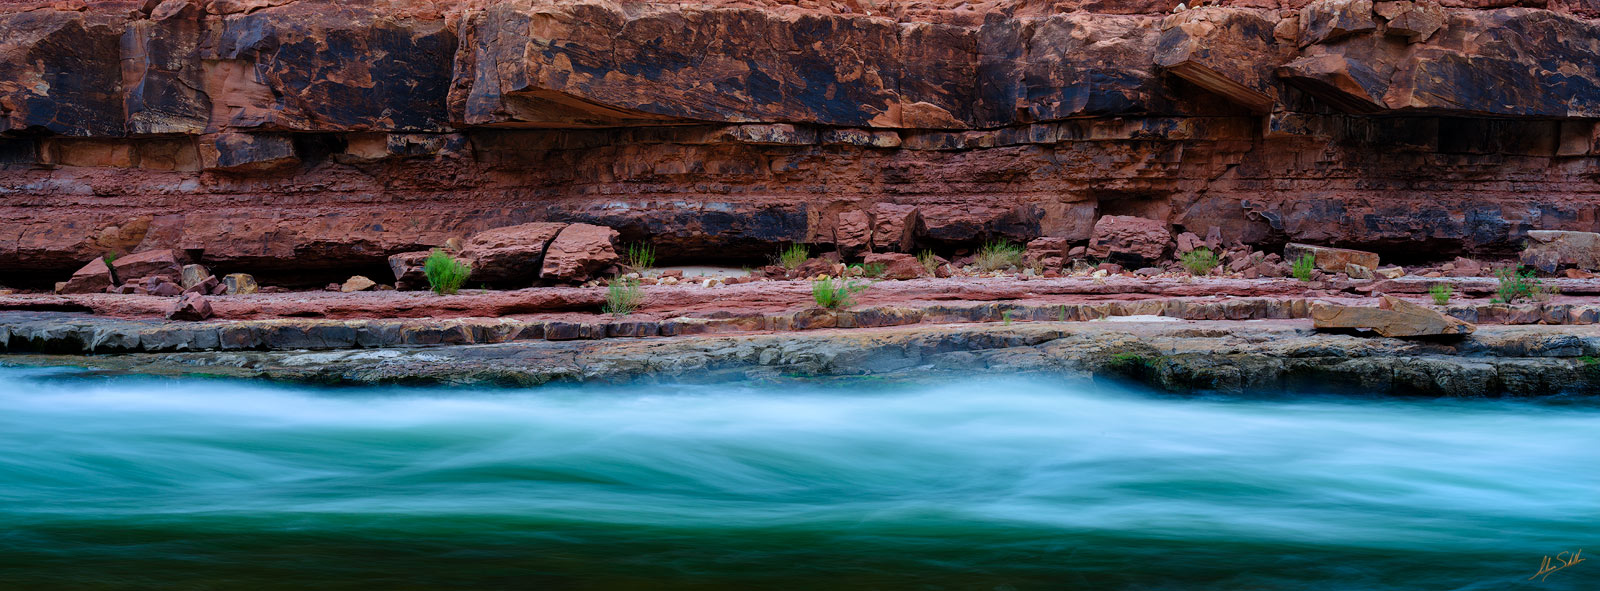 The Colorado River at North Canyon in Grand Canyon National Park. © Adam Schallau, All Rights Reserved.